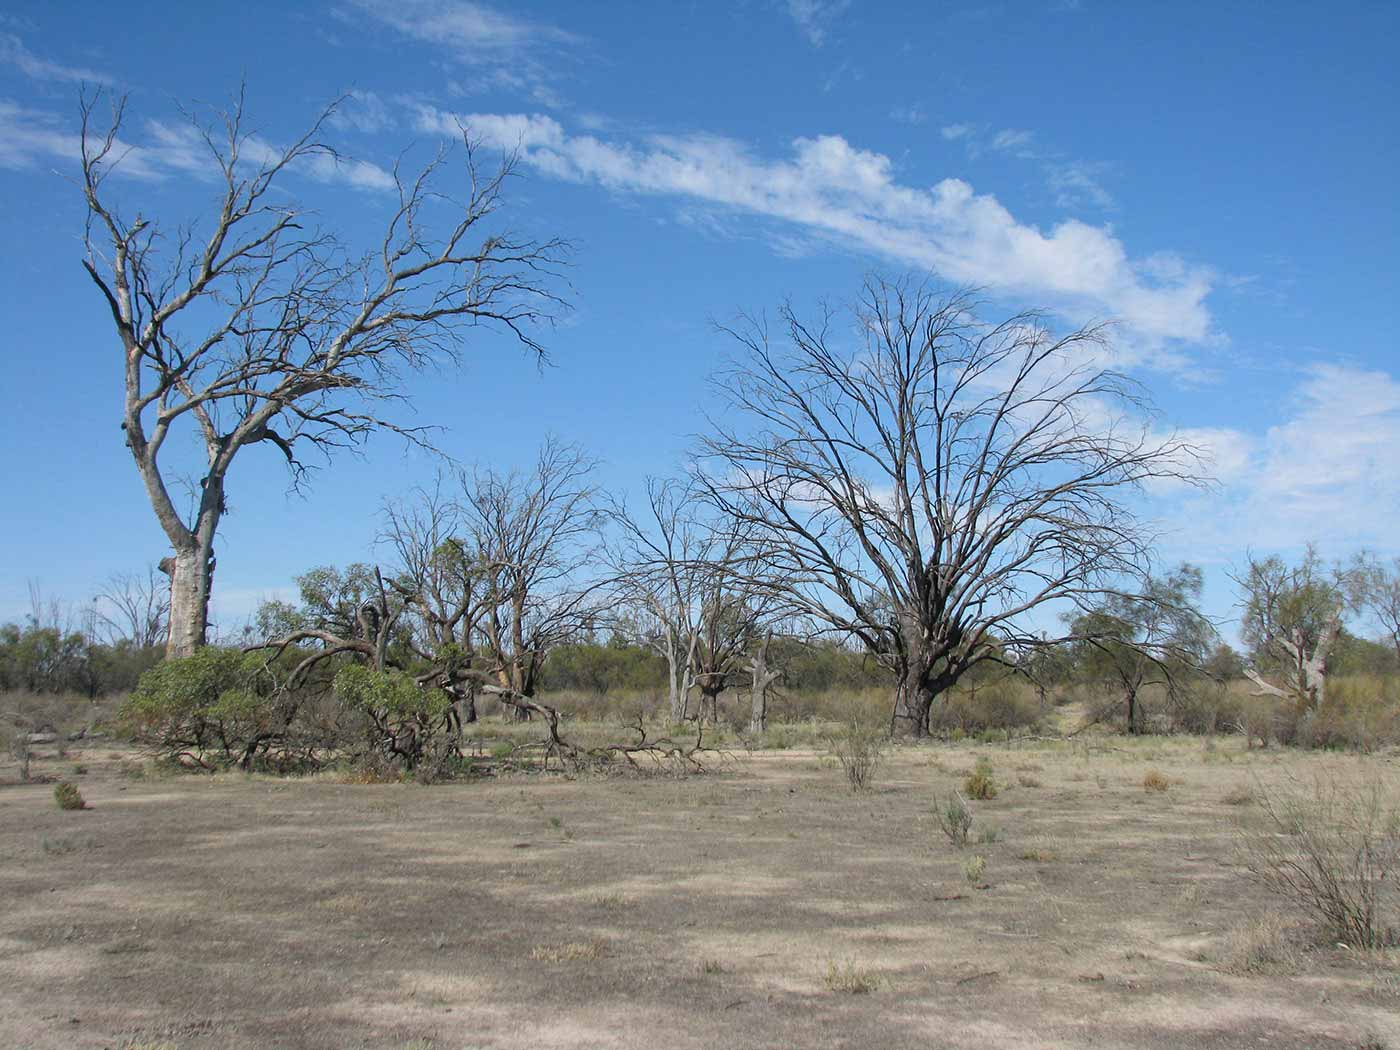 Colour photograph of dry land and trees. - click to view larger image